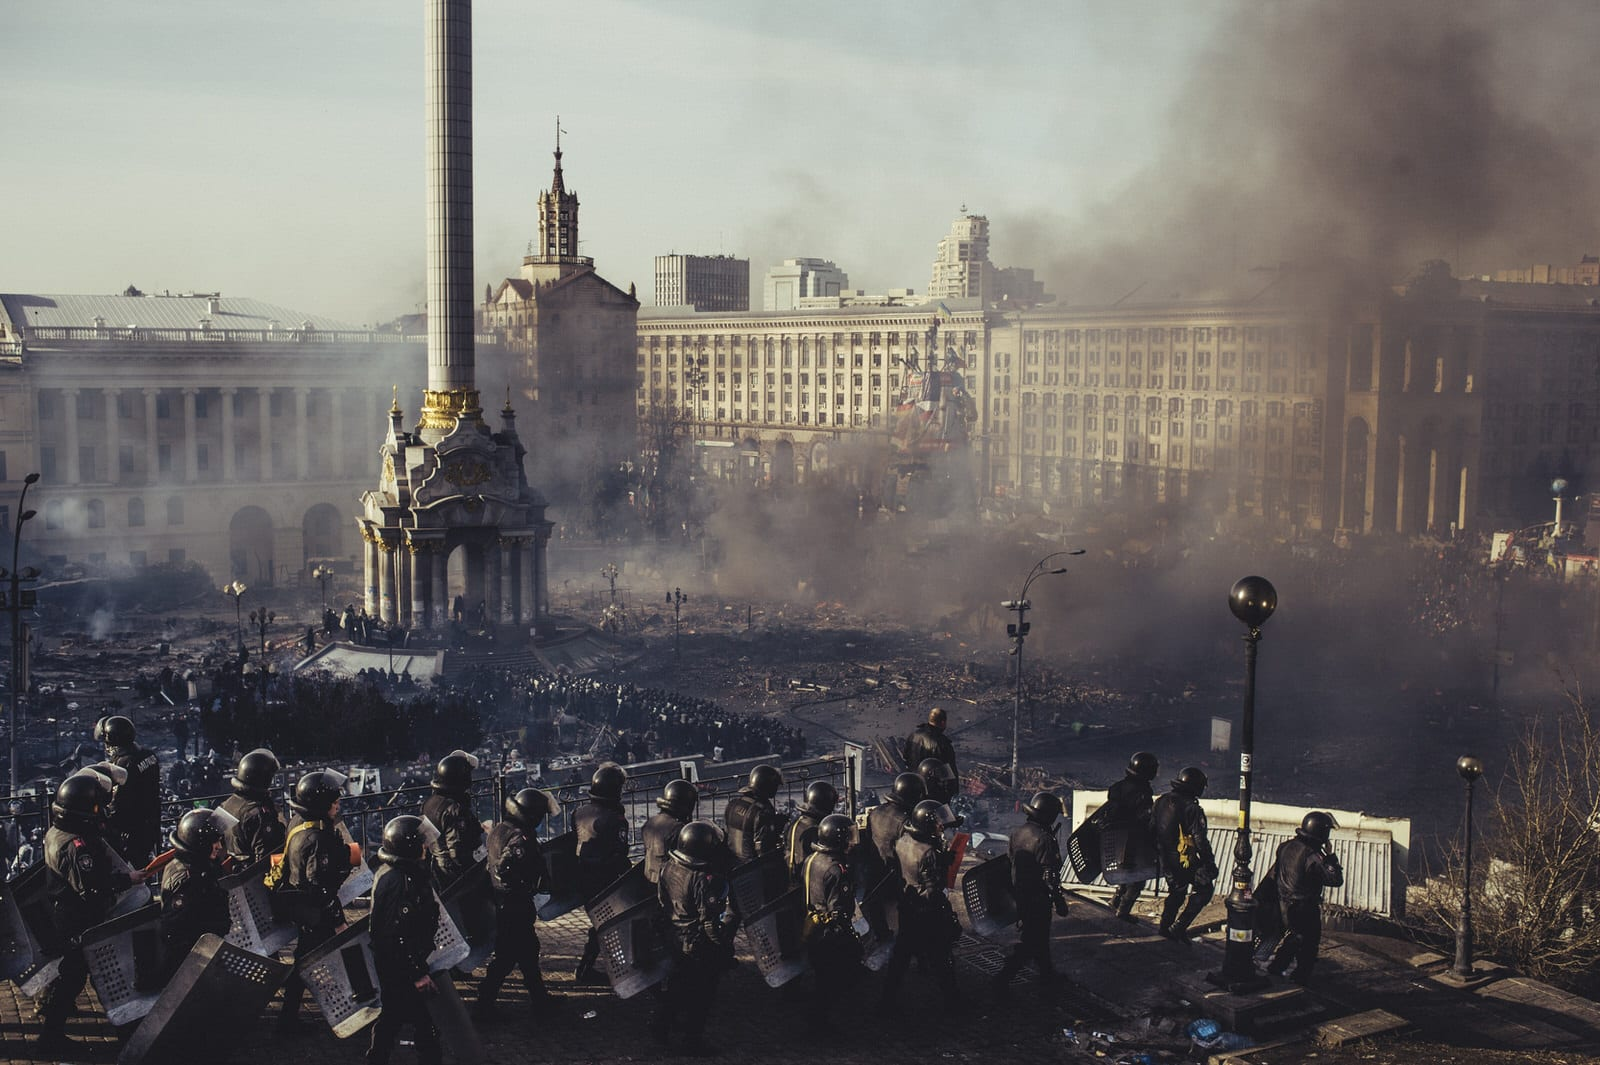 The attempt to block Parliament of Ukraine (Verhovna Rada). The police burned the Trade Union Federation of Ukraine – those still in the building were burned alive. 20th February 2014